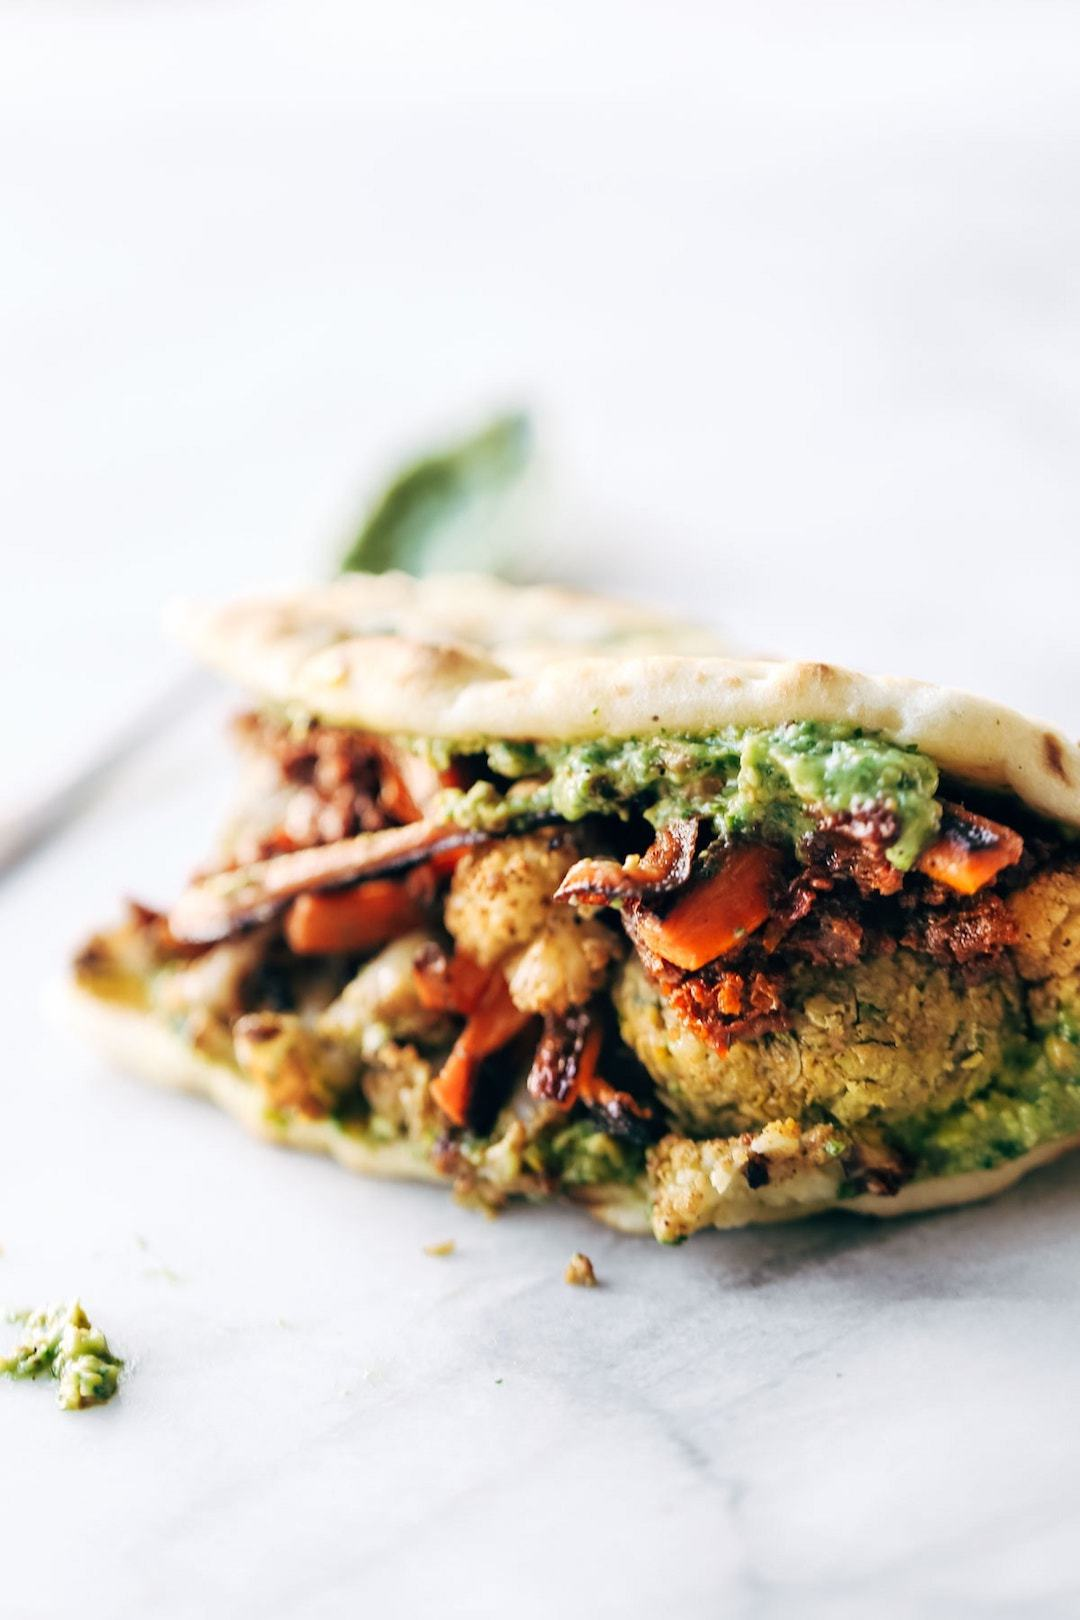 11 Yummy Plant Based Sandwiches - Falafel Naanwhich by Pinch of Yum